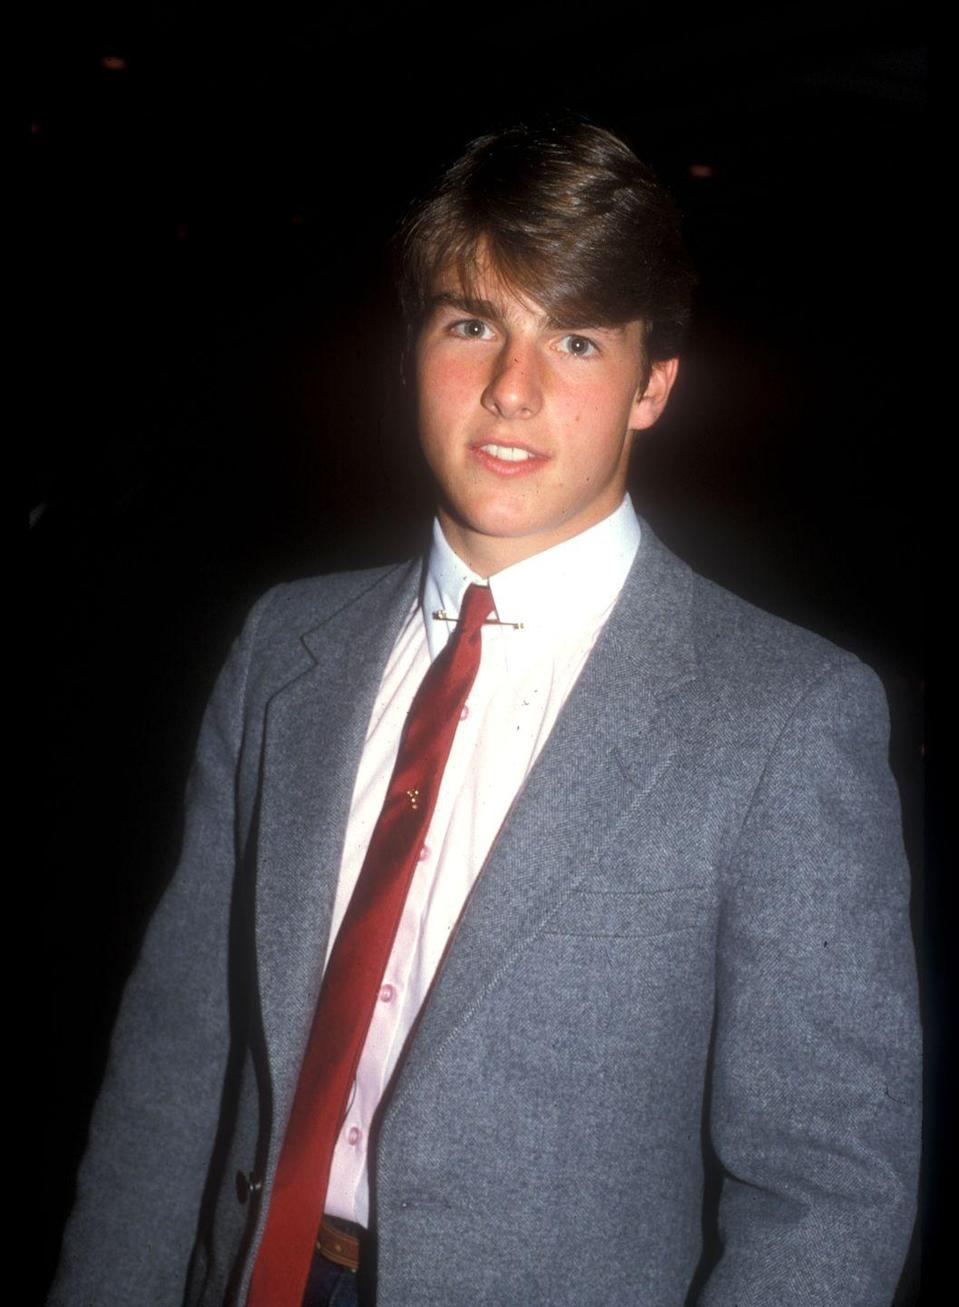 """<p>Tom Cruise's breakout role was a minor role in the romantic drama <em>Endless Love</em> in 1981. From there, things only skyrocketed for him. He made waves in <em>Risky Business </em>in 1983 and again as Lt. Pete """"Maverick"""" Mitchell in <em>Top Gun </em>in 1986. </p>"""